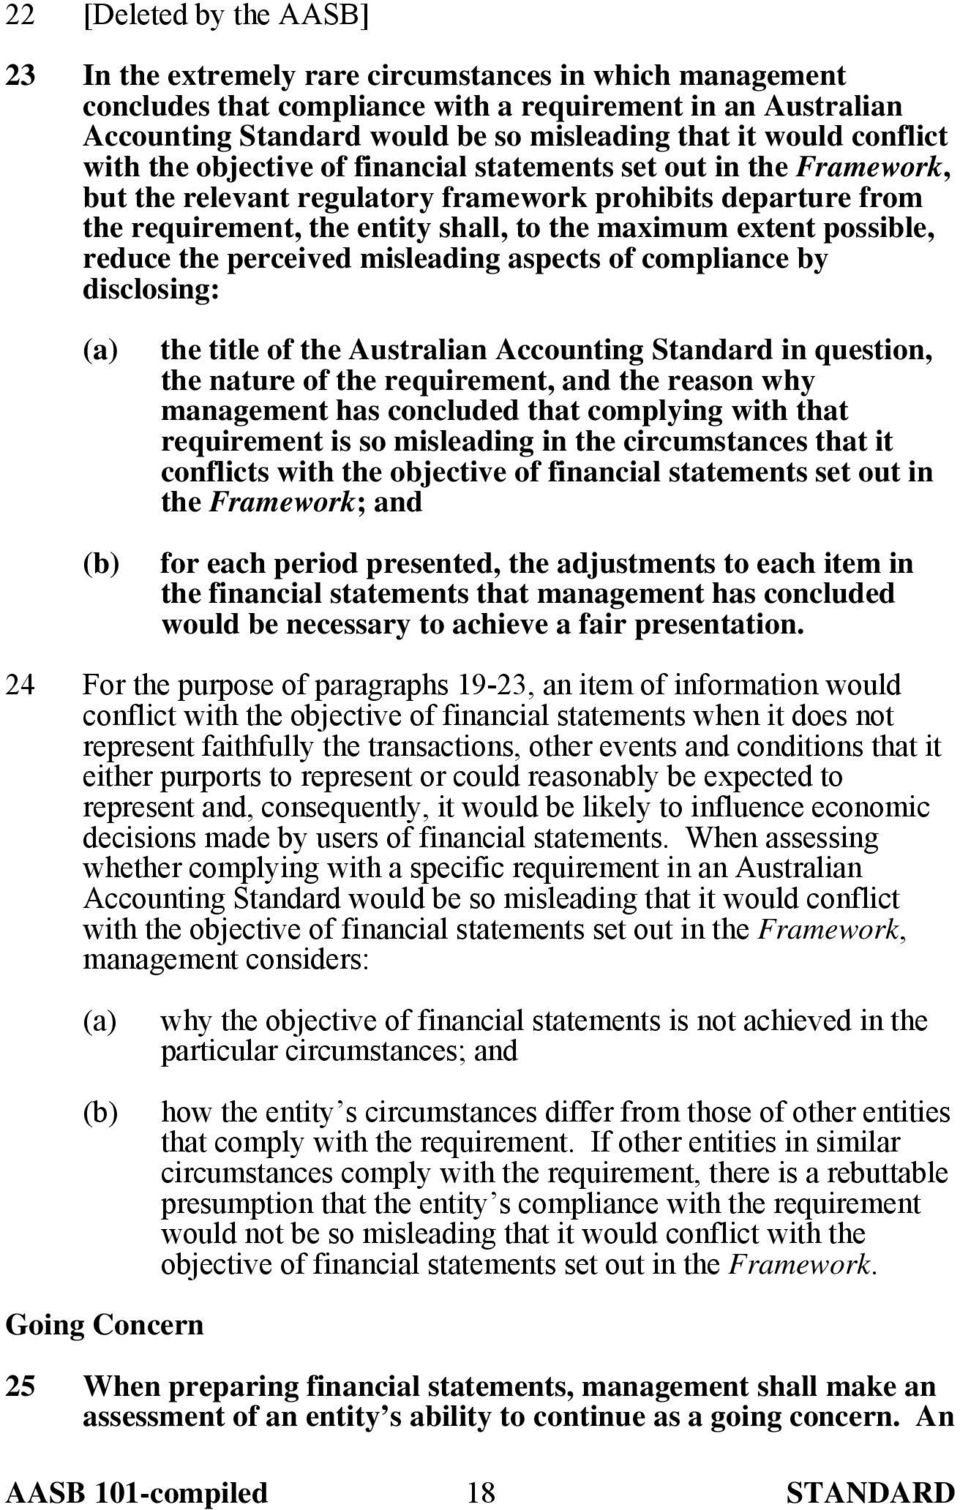 extent possible, reduce the perceived misleading aspects of compliance by disclosing: the title of the Australian Accounting Standard in question, the nature of the requirement, and the reason why